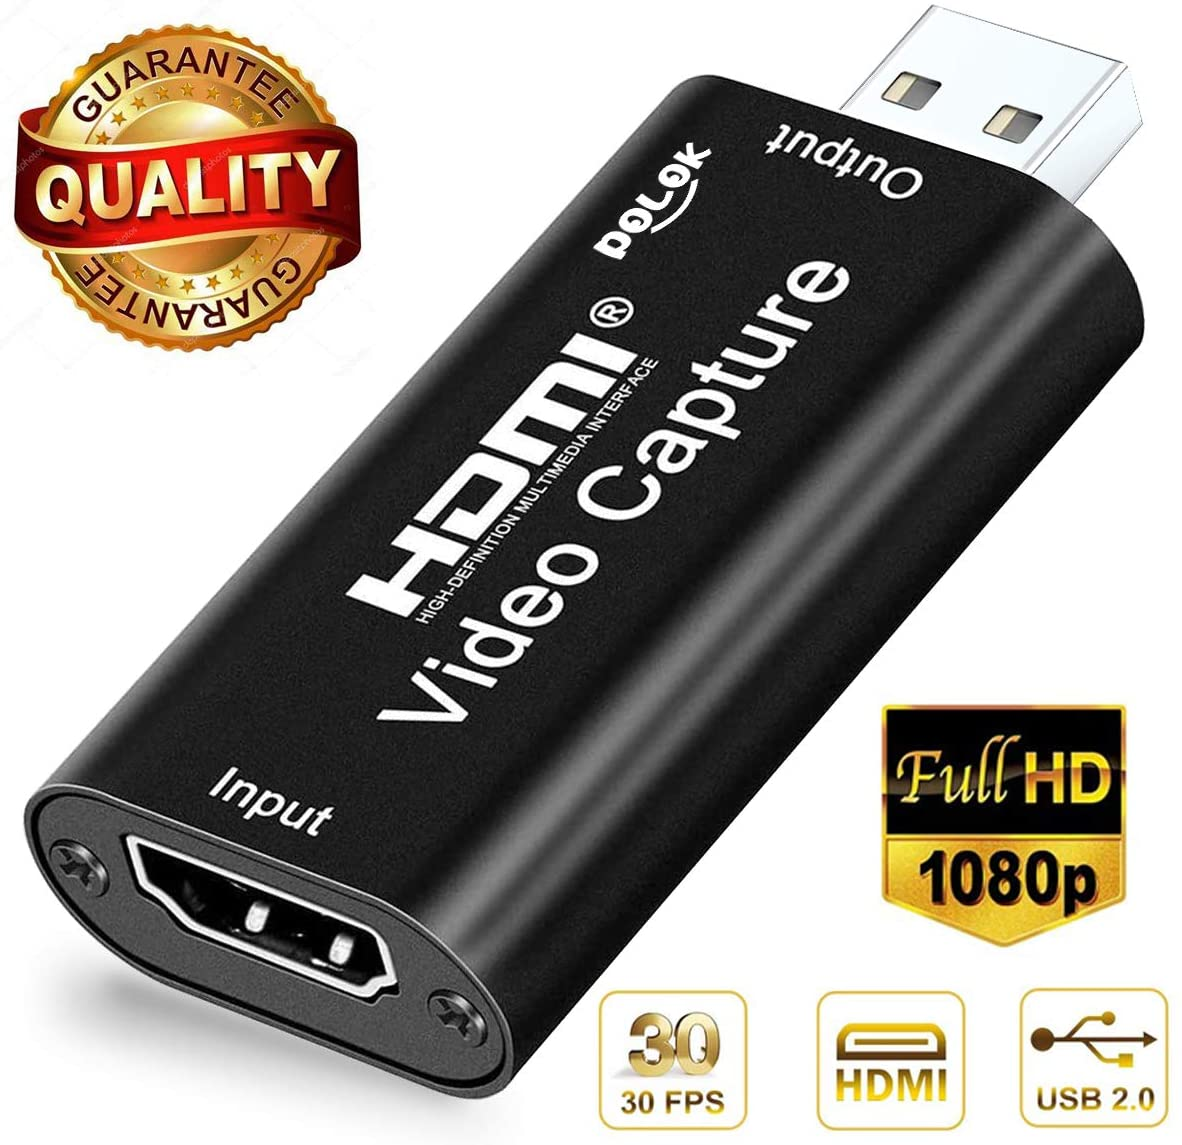 HDMI Video Capture Cards, HDMI to USB Audio Video Capture Cards, Full HD 1080P Recording, Easily Connect DSLR, Camcorder, or Action Cam to PC or Mac for High Definition Acquisition, Live Broadcasting